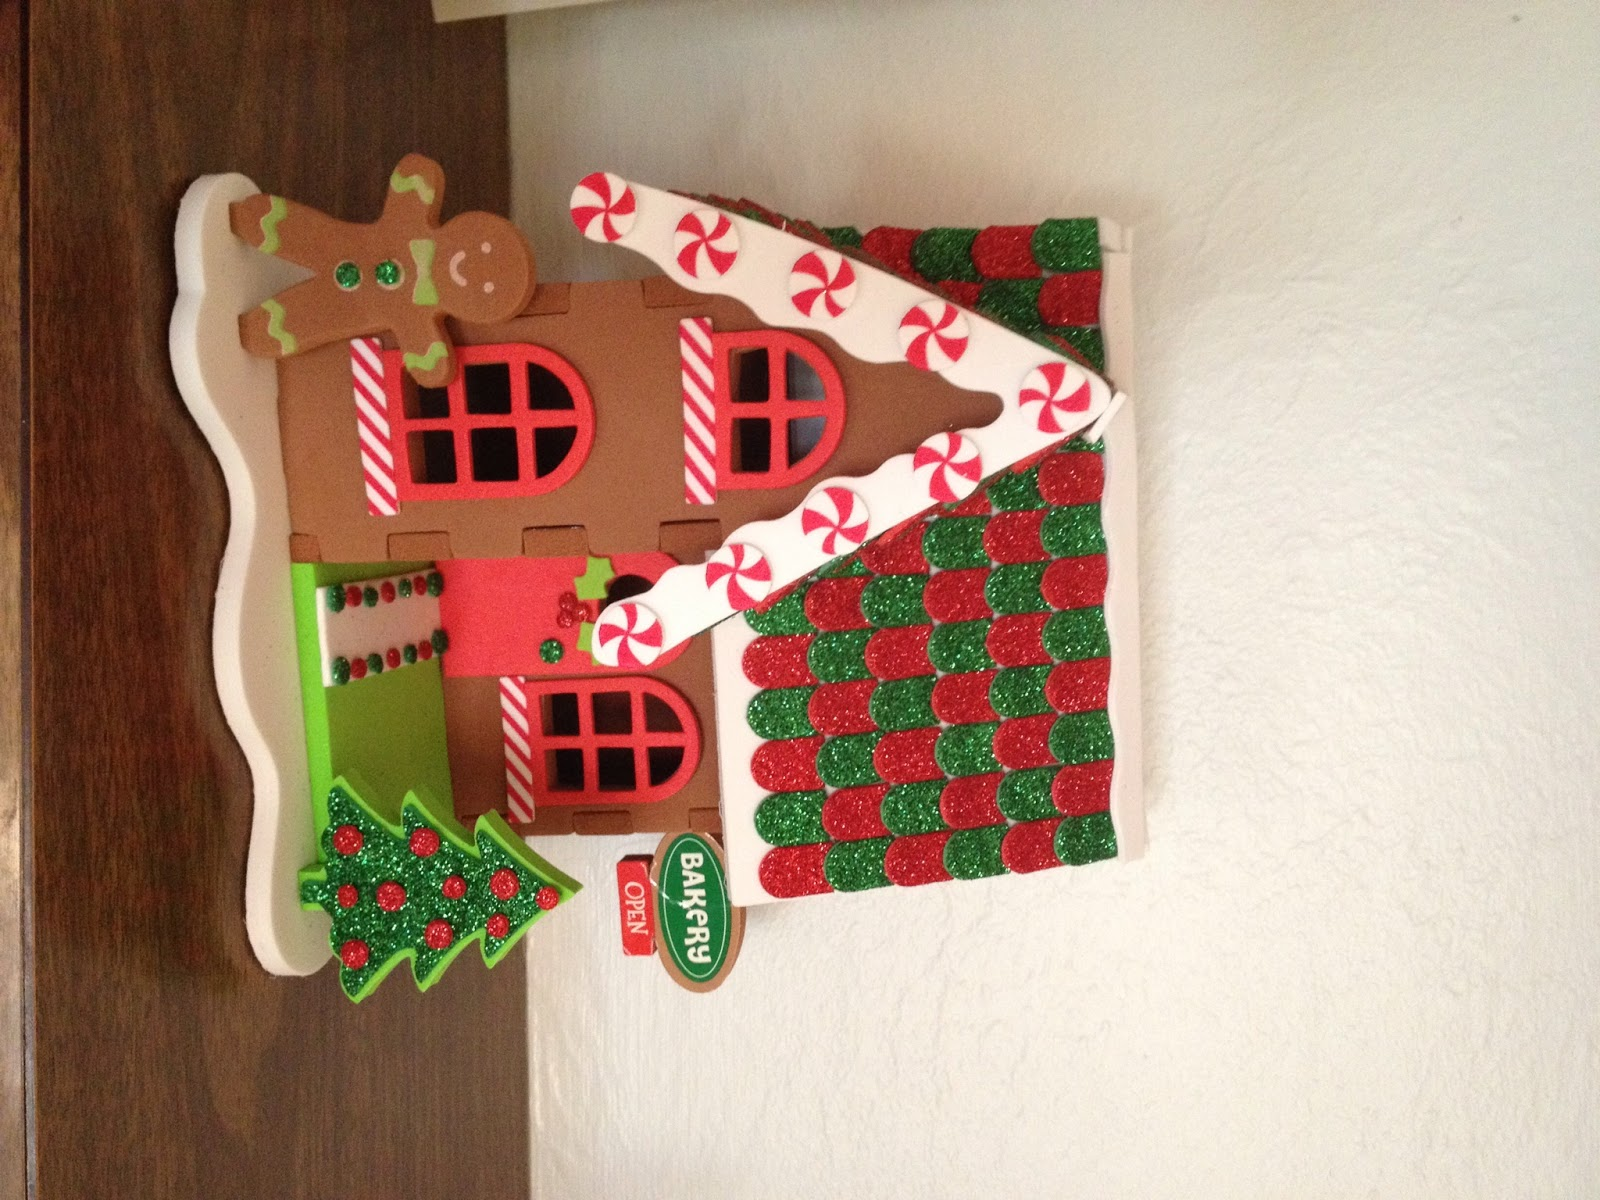 Edible Gingerbread House Kit Walmart